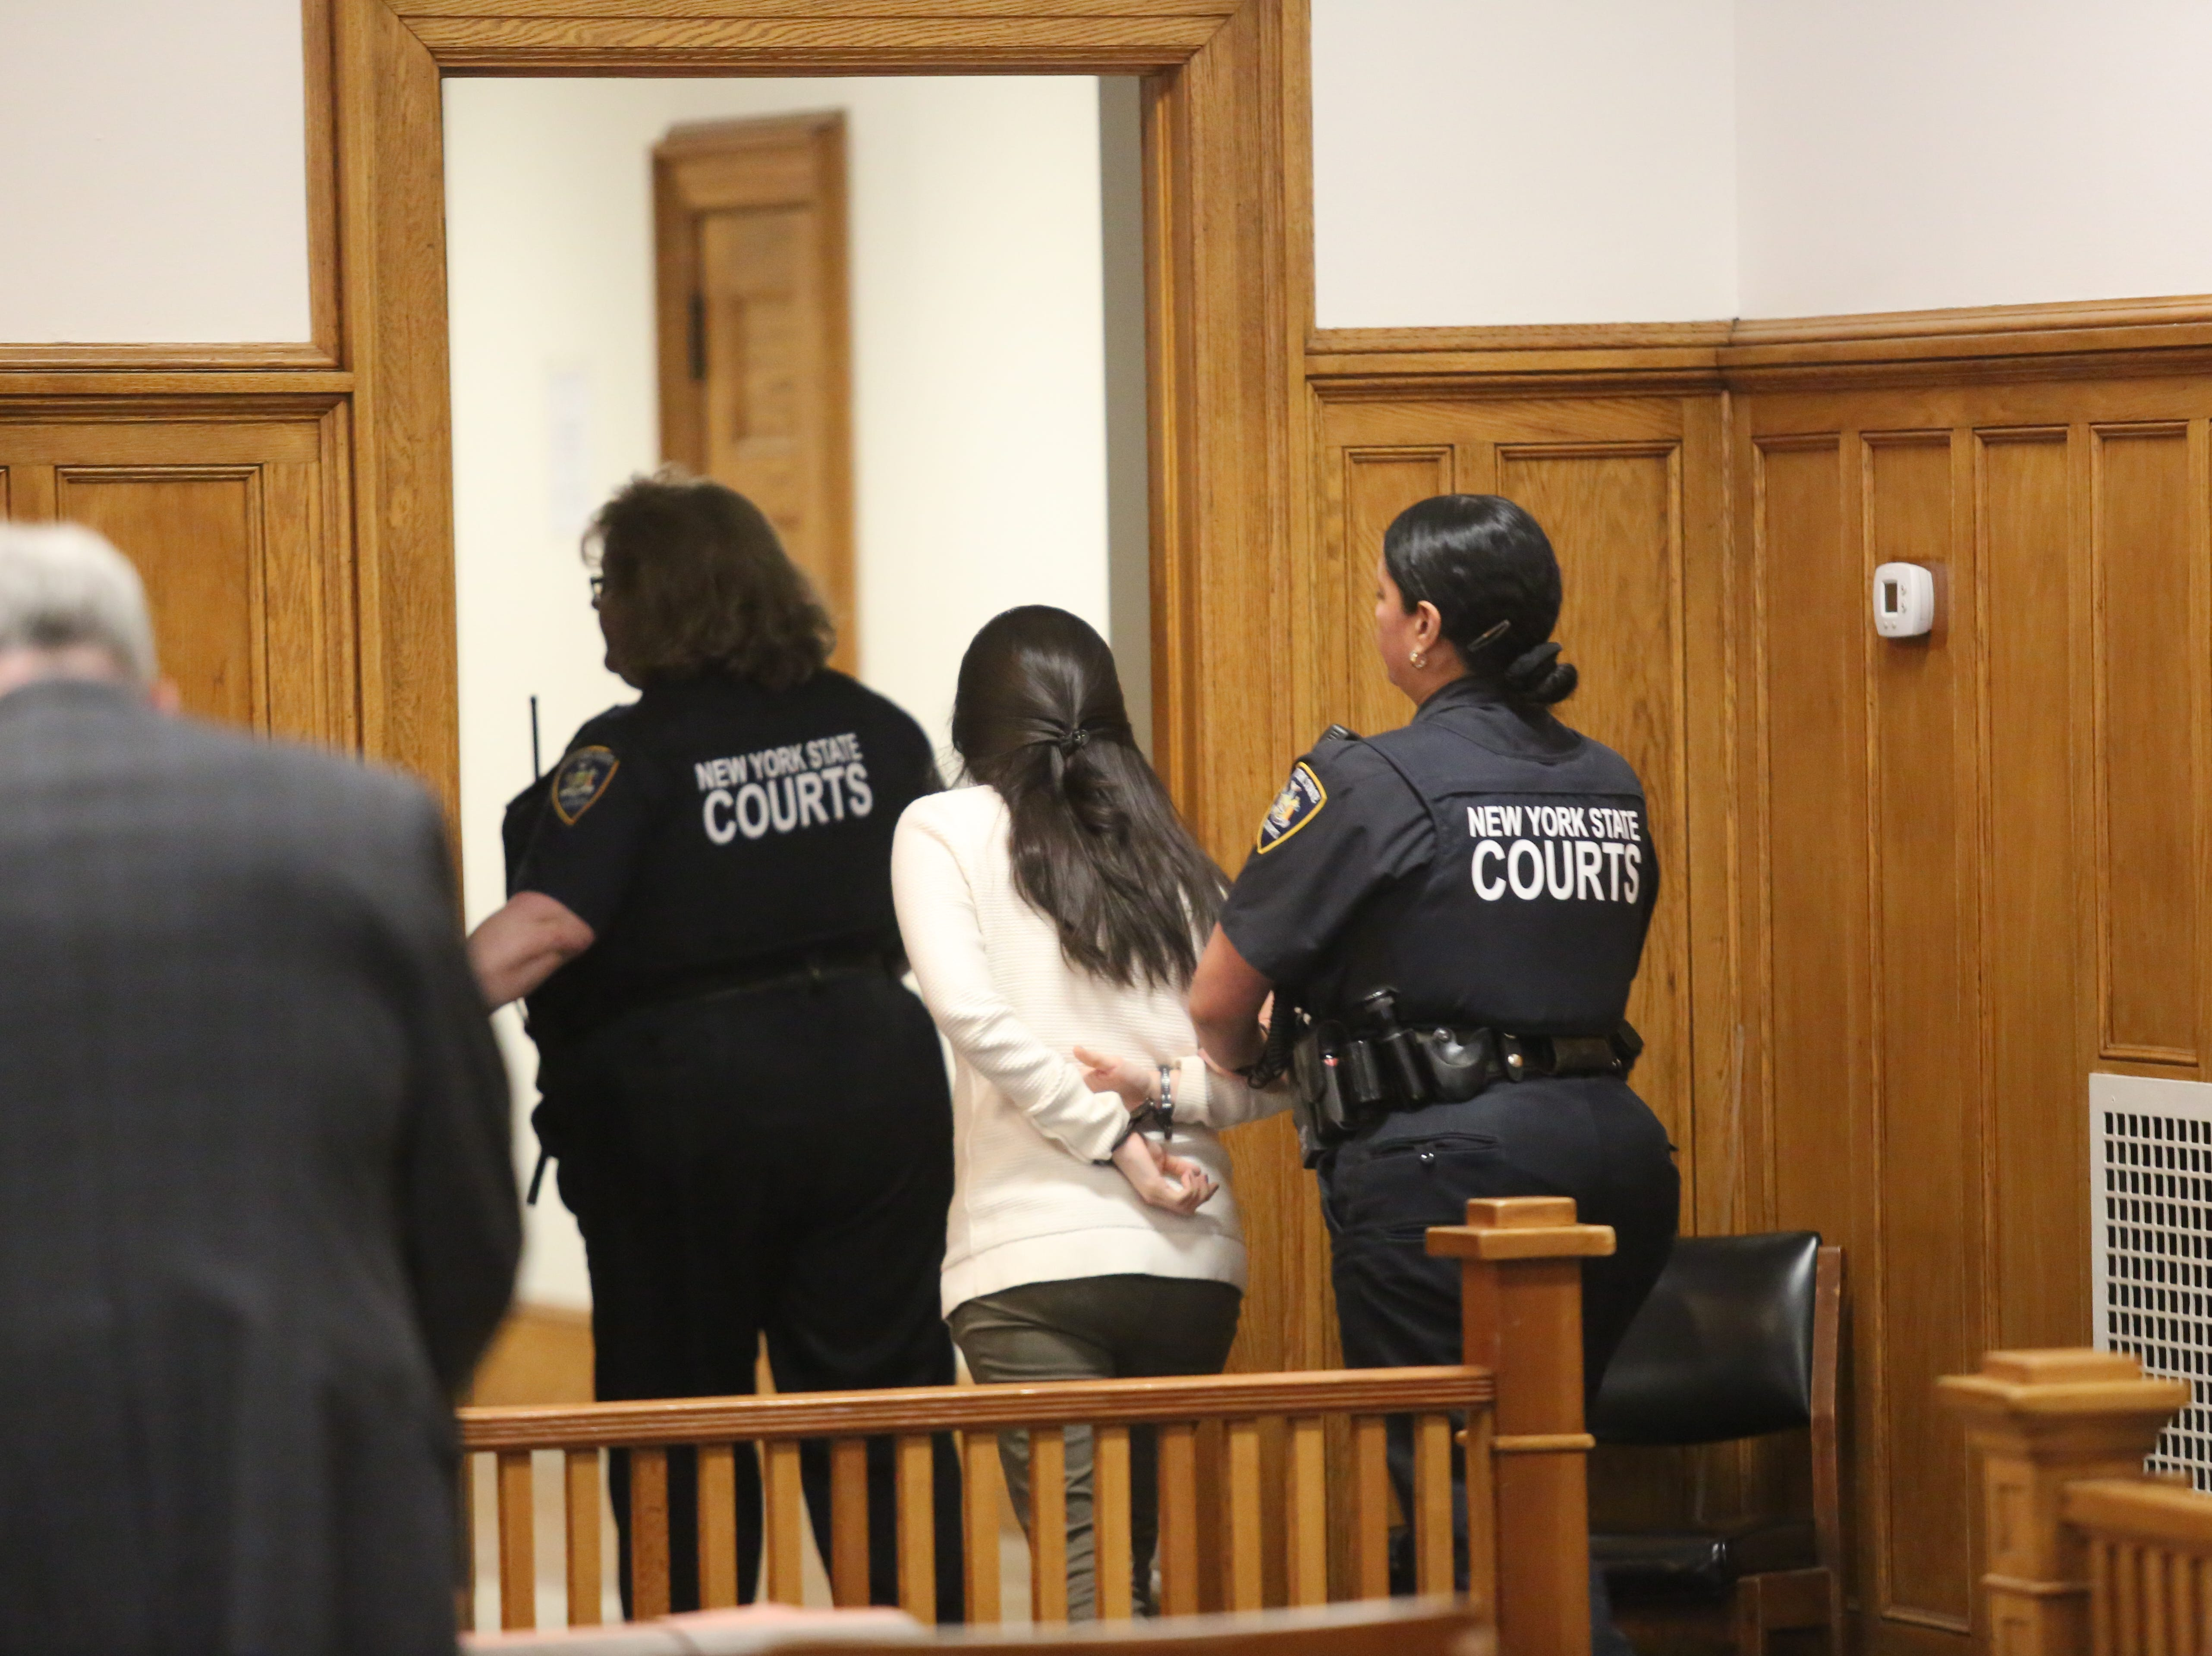 Nicole Addimando is taken out of Dutchess County Court in handcuffs after she was found guilty of second-degree murder in the shooting death of Christopher Grover on April 12, 2019.